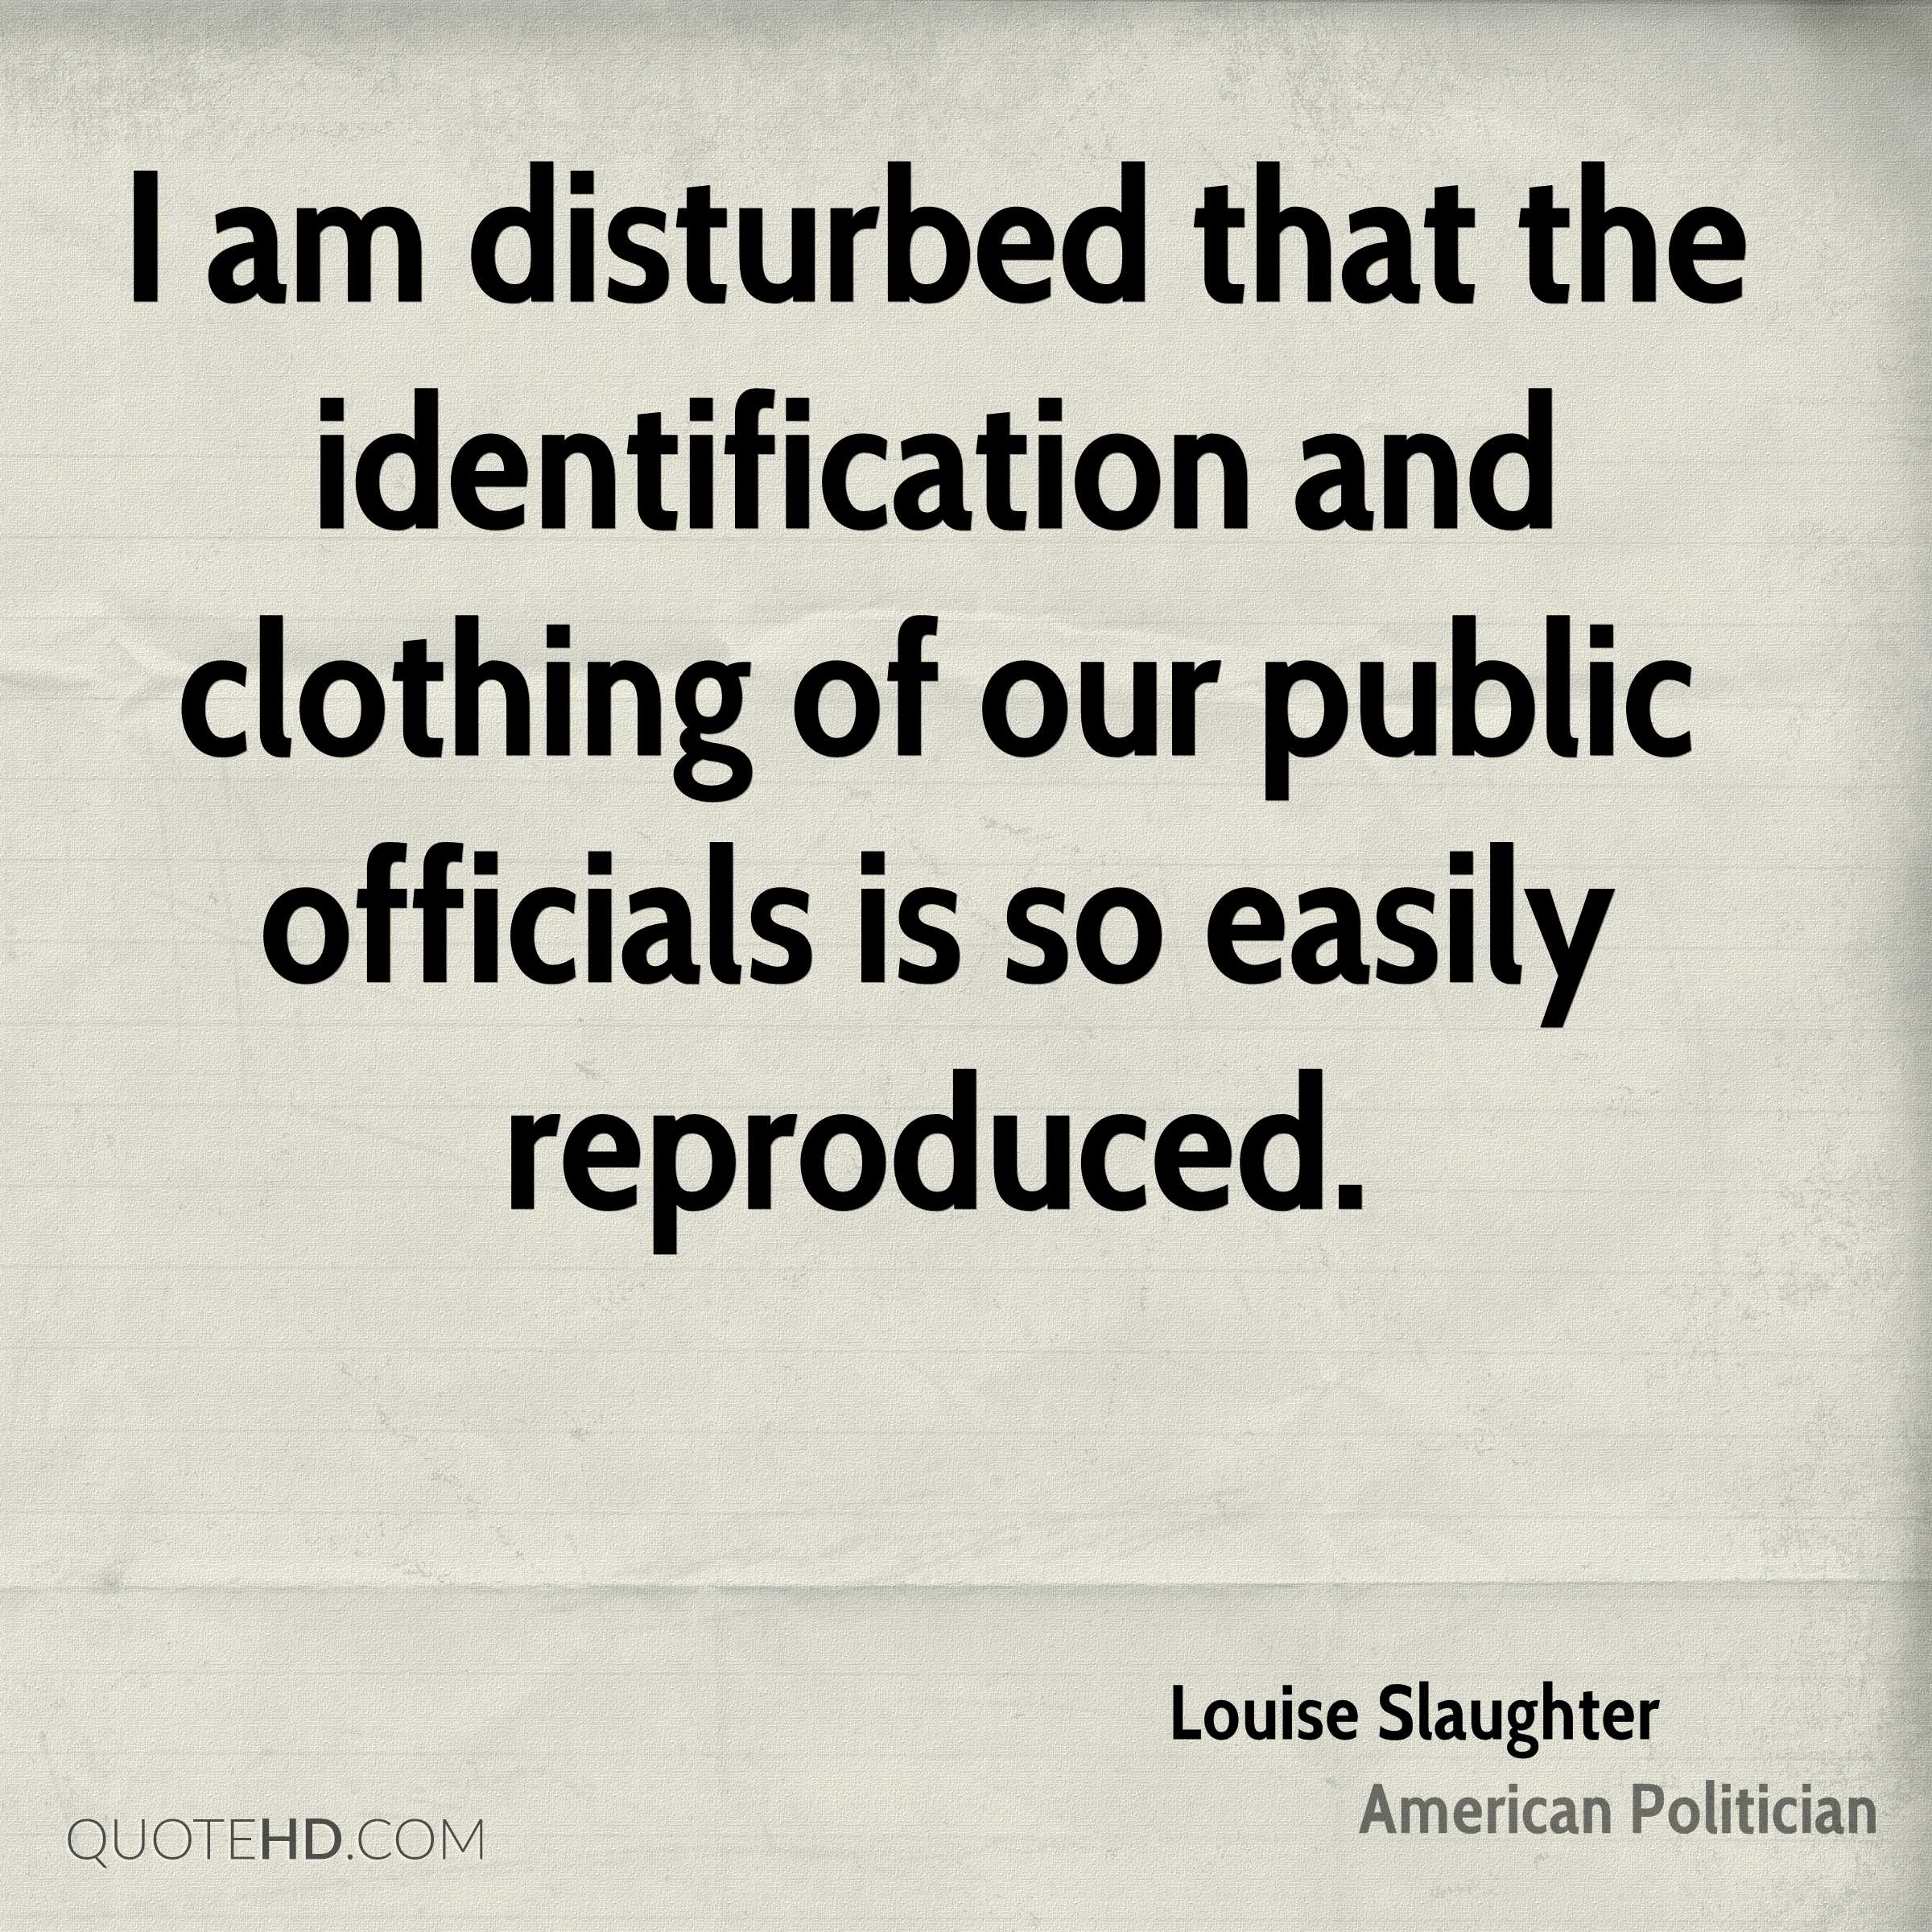 I am disturbed that the identification and clothing of our public officials is so easily reproduced.